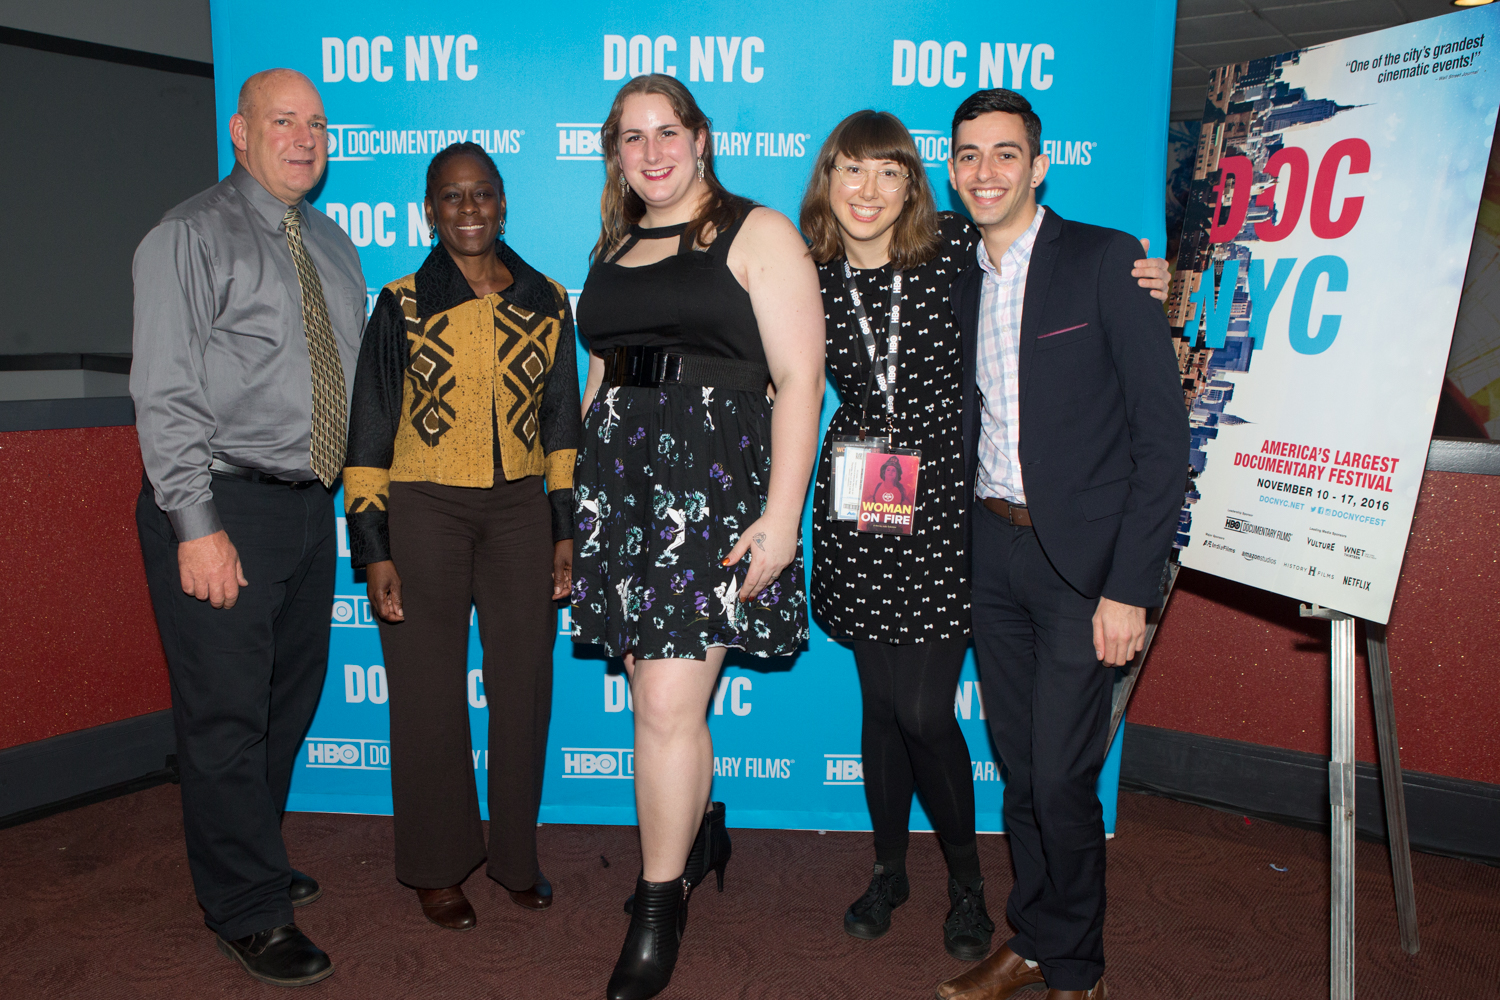 The Woman on Fire team celebrates the film's world premiere at DOC NYC. Pictured (Left to Right): George Guinan (Film Subject), Chirlane McCray (First Lady of NYC), Brooke Guinan (Film Subject), Julie Sokolow (Film Director), and Gabriel Lewenstein (LGBT Outreach Coordinator for the NY Public Advocate).